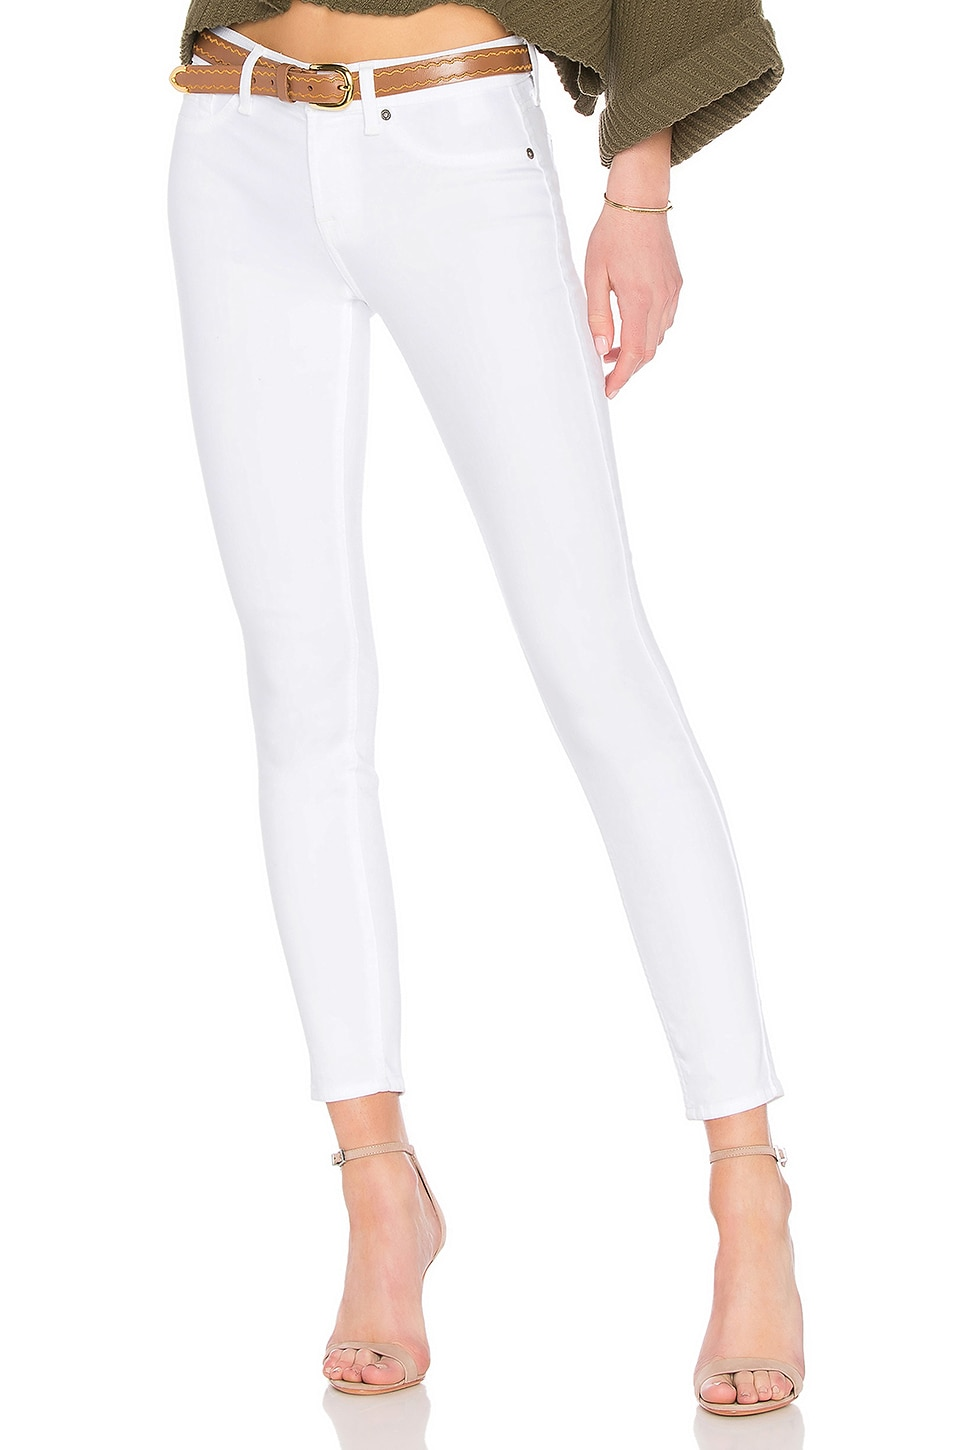 7 For All Mankind Ankle Skinny Jean in Clean White